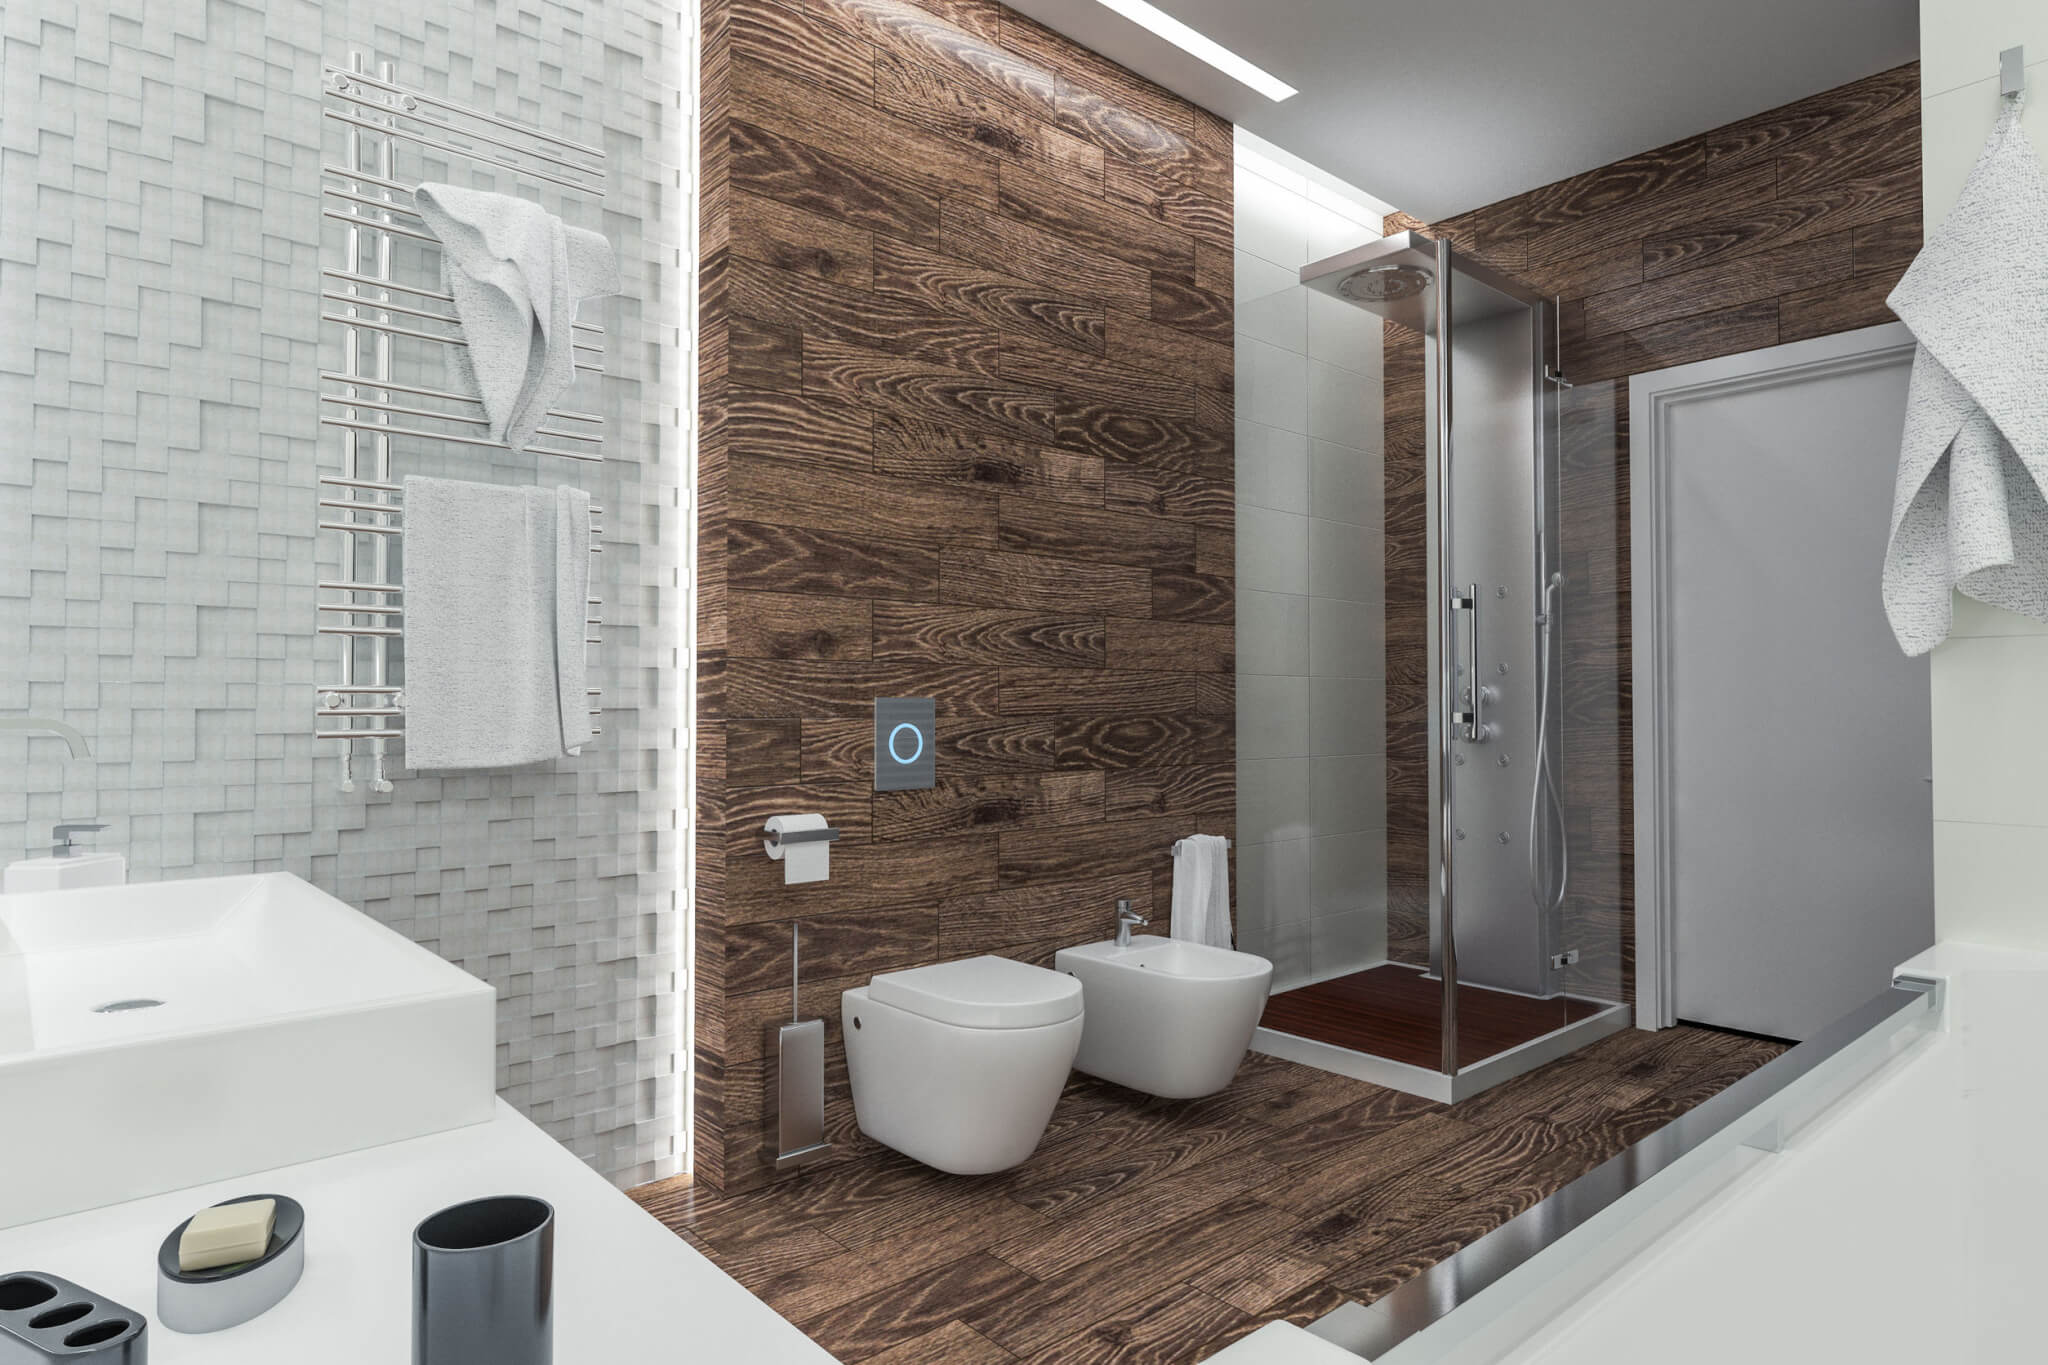 43578209 - modern design of a bathroom with shower